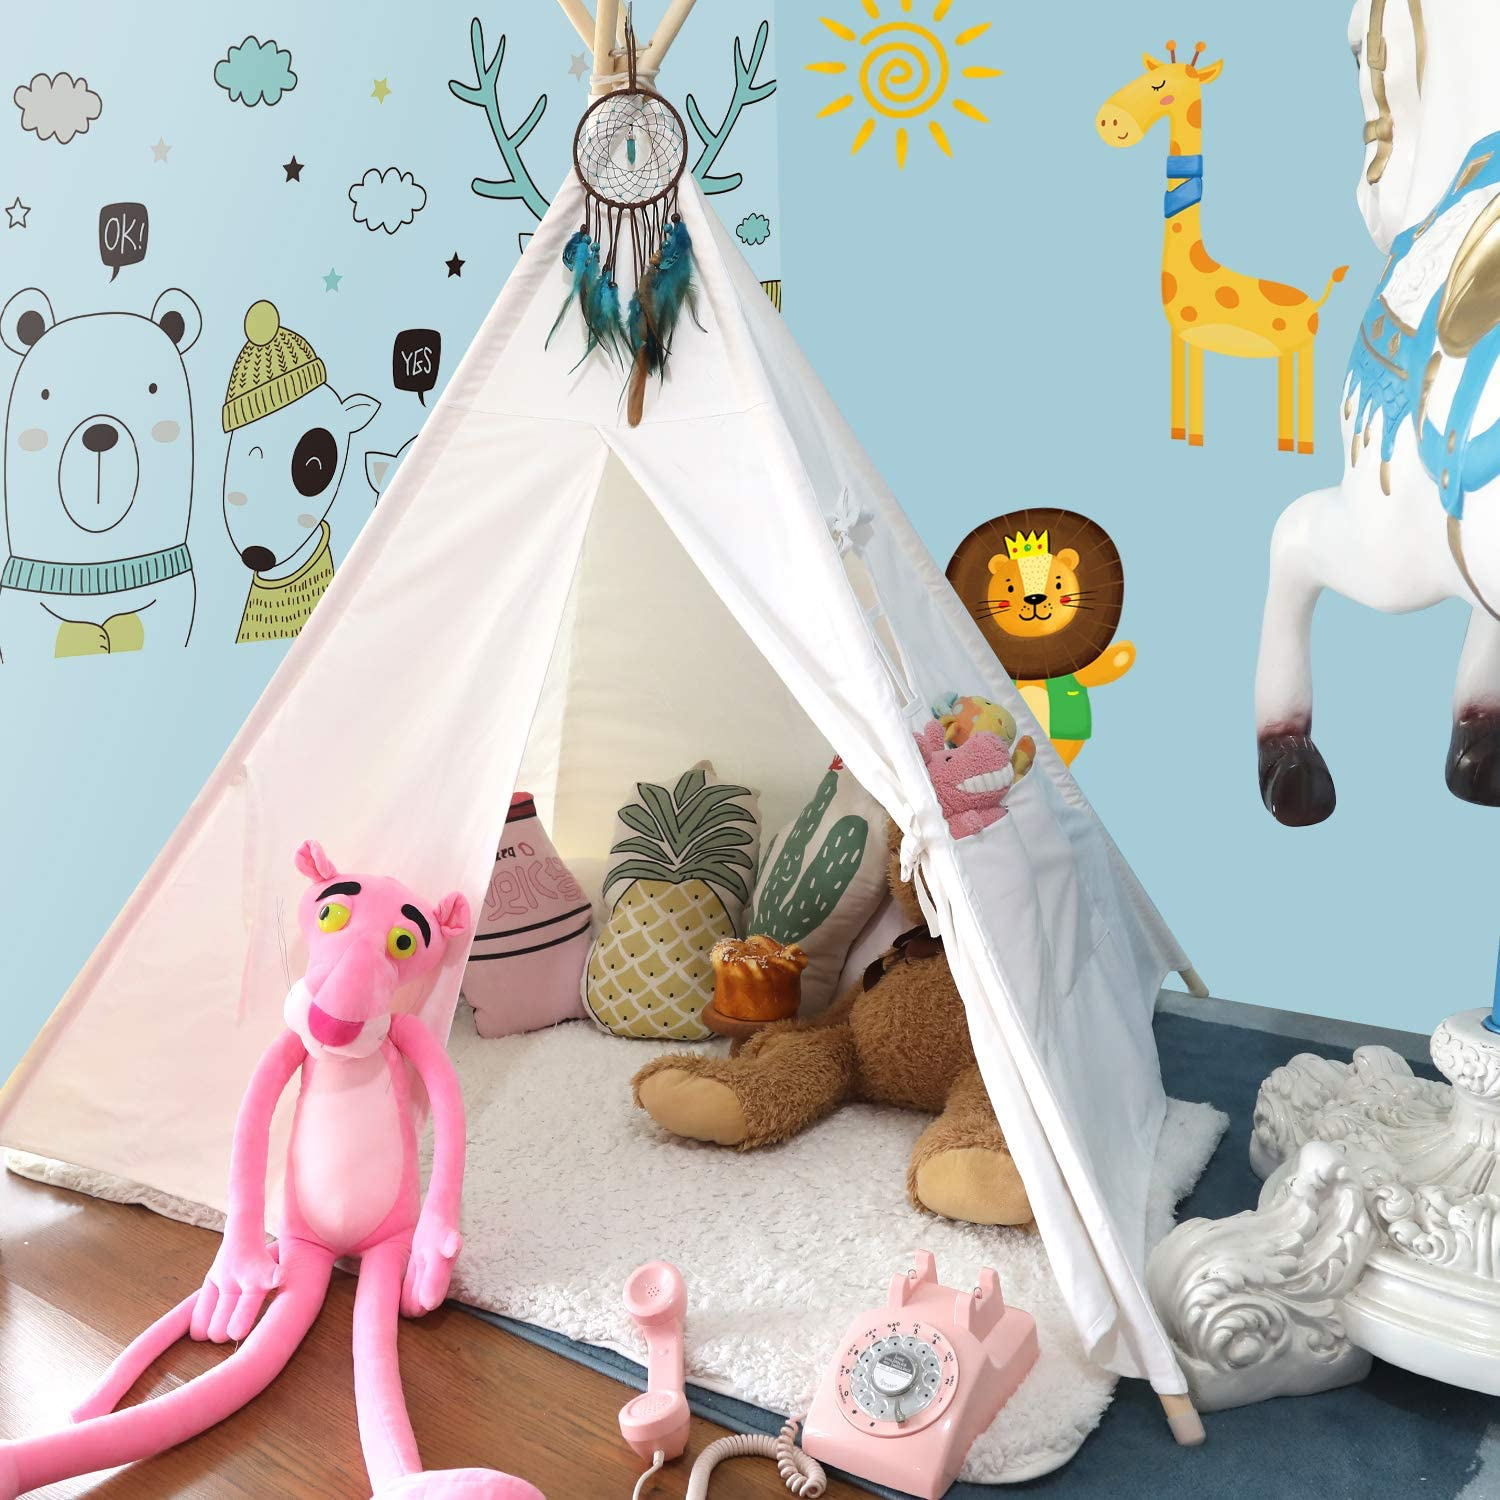 Top 15 Best Kids Teepee Tents (2020 Reviews & Buying Guide) 13